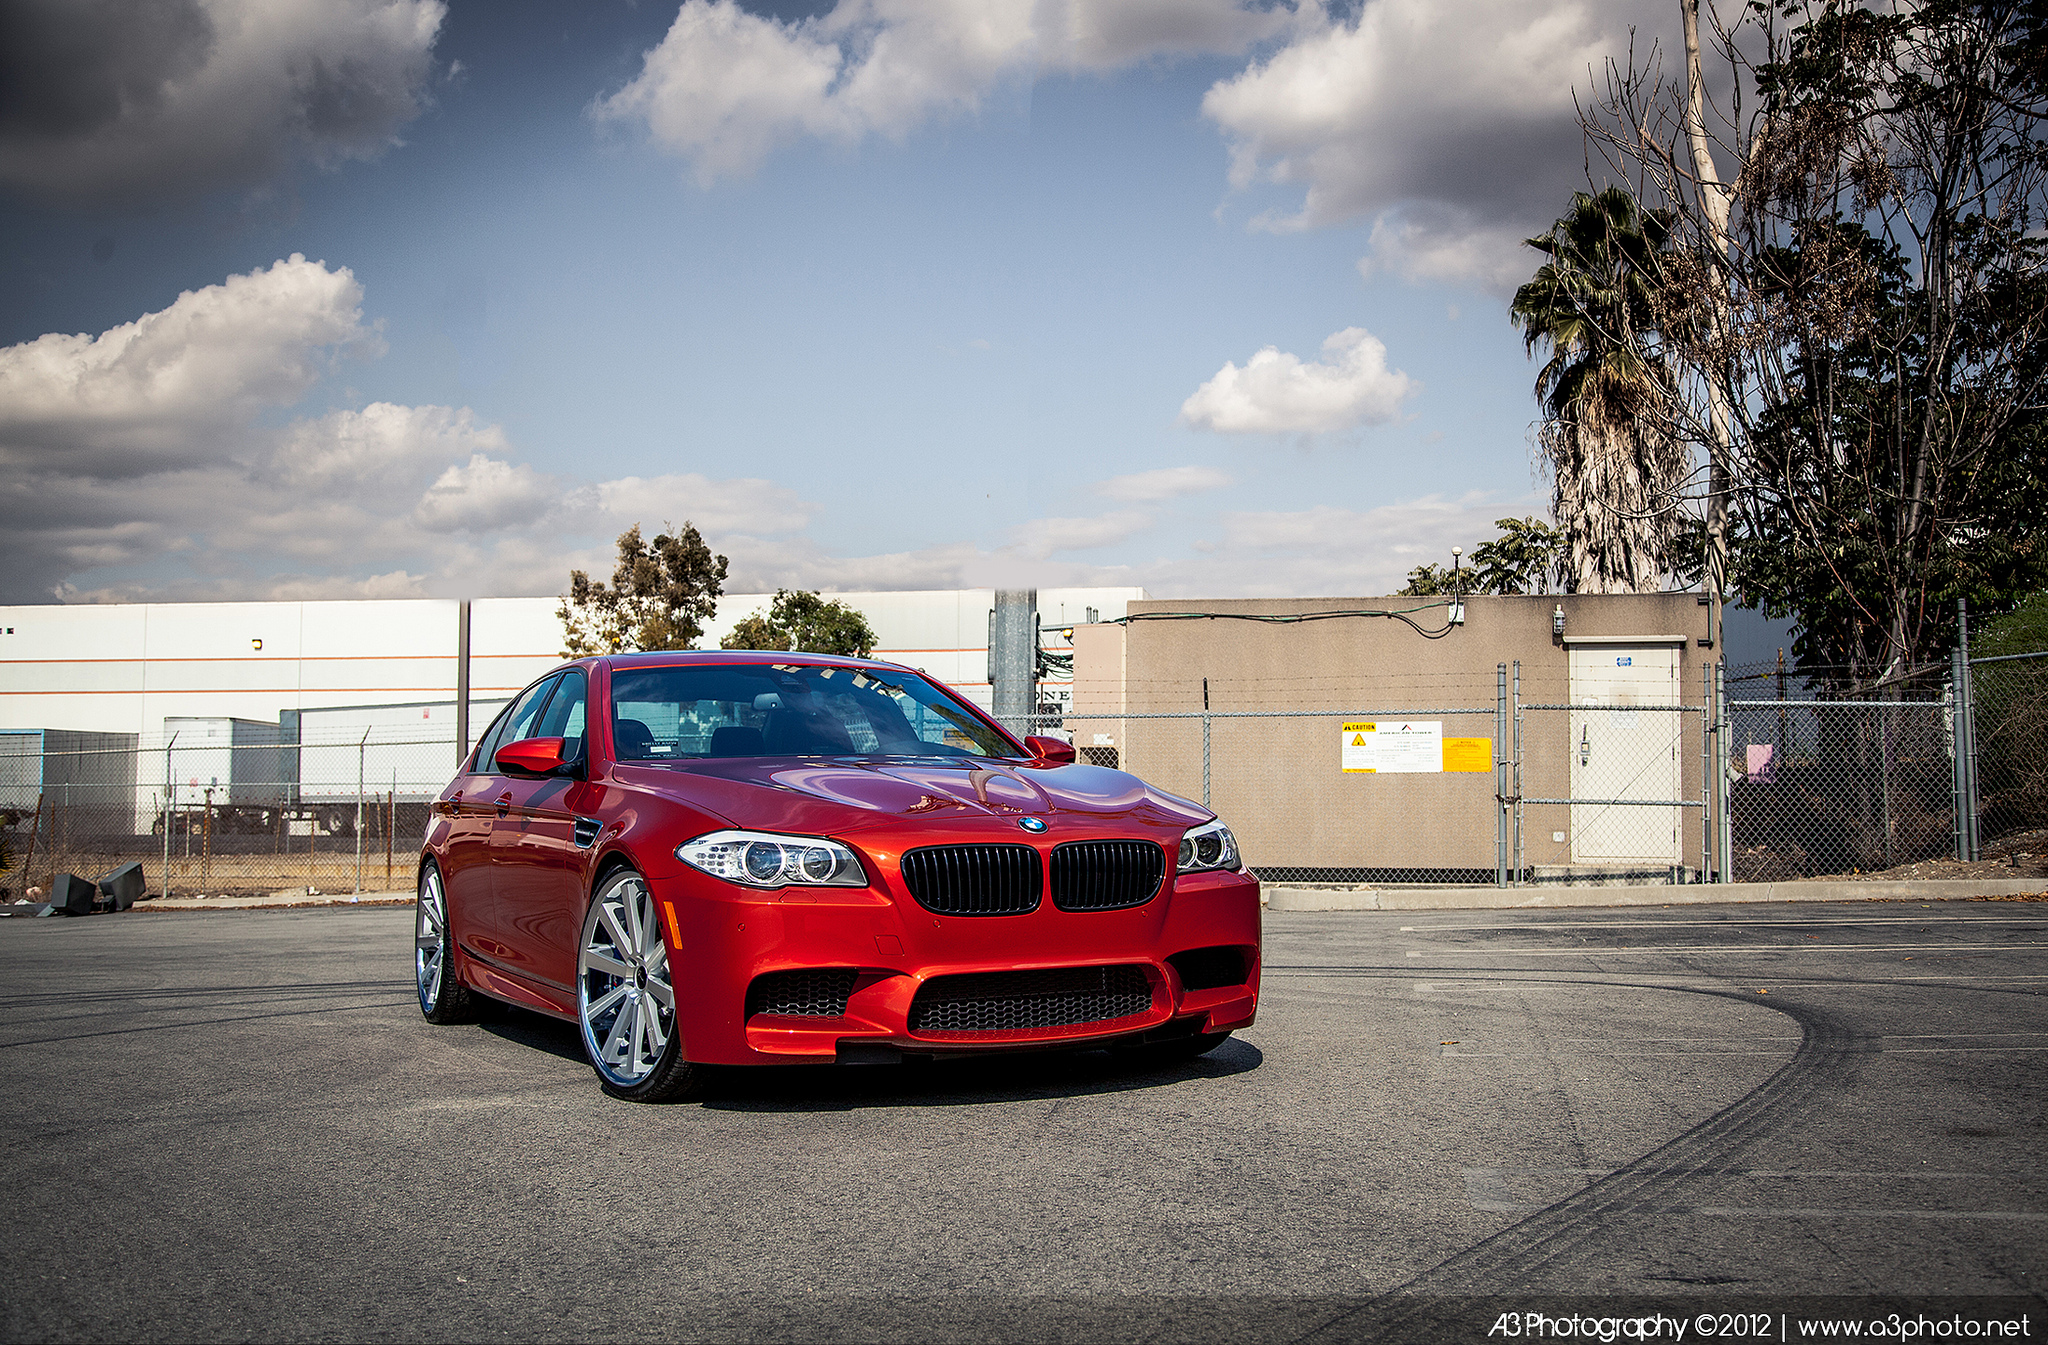 Gianelle Santo 2SS Silver on BMW M5 F10